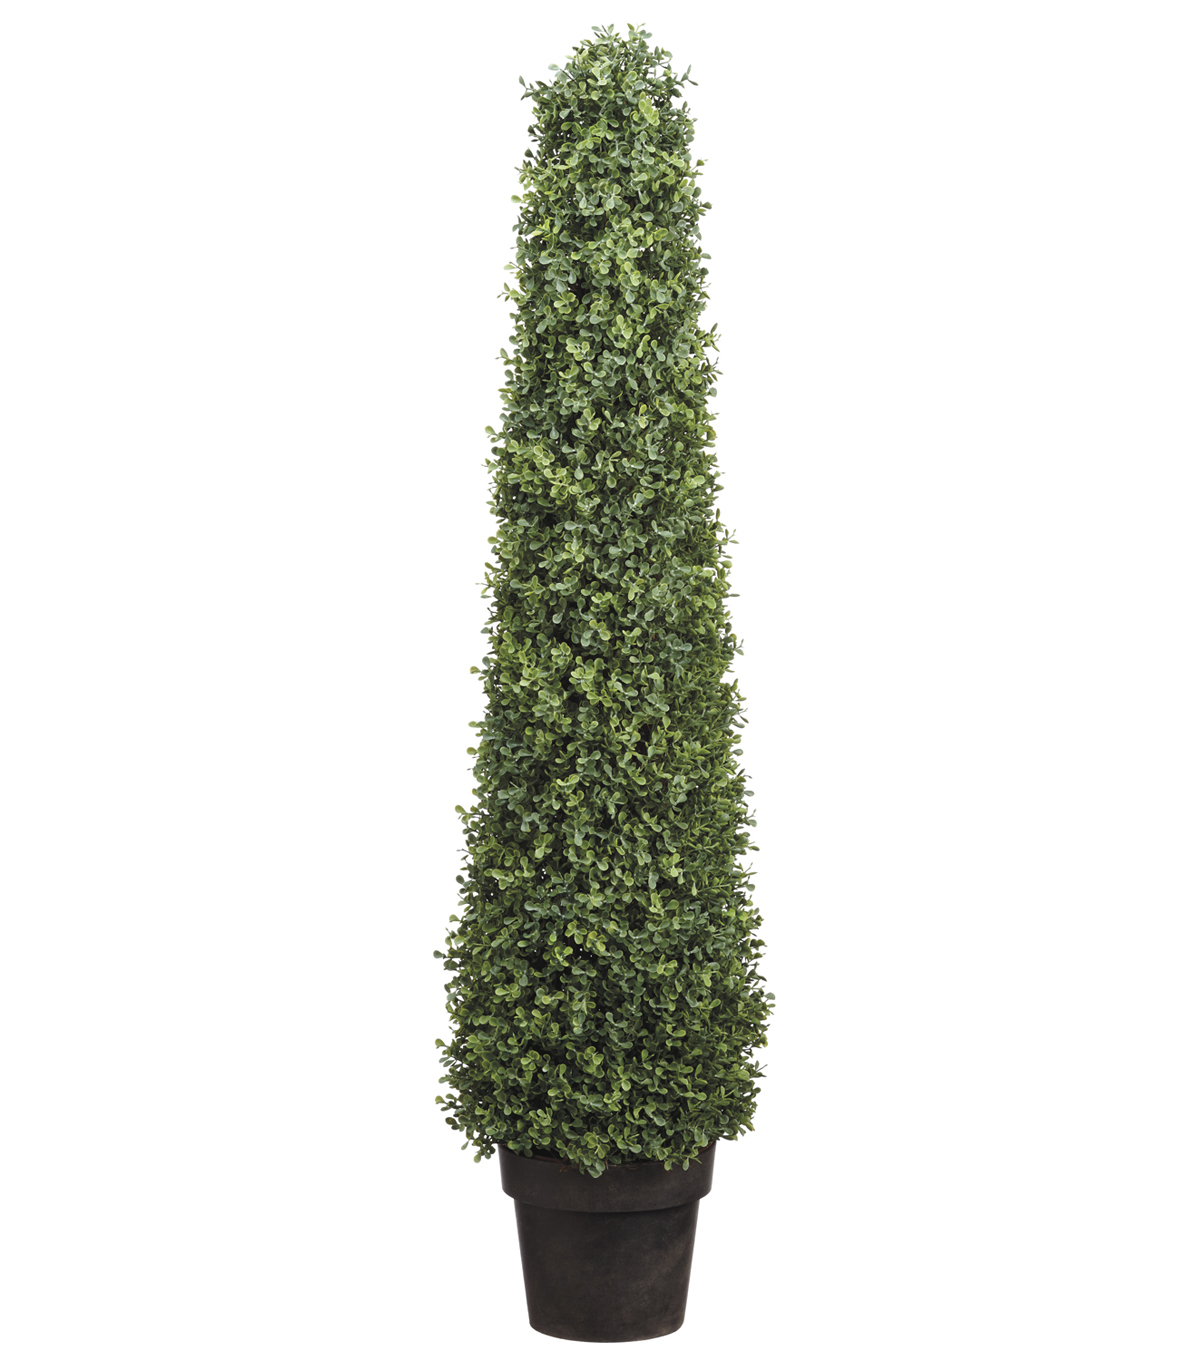 Boxwood Cone Topiary in Plastic Pot 46\u0027\u0027